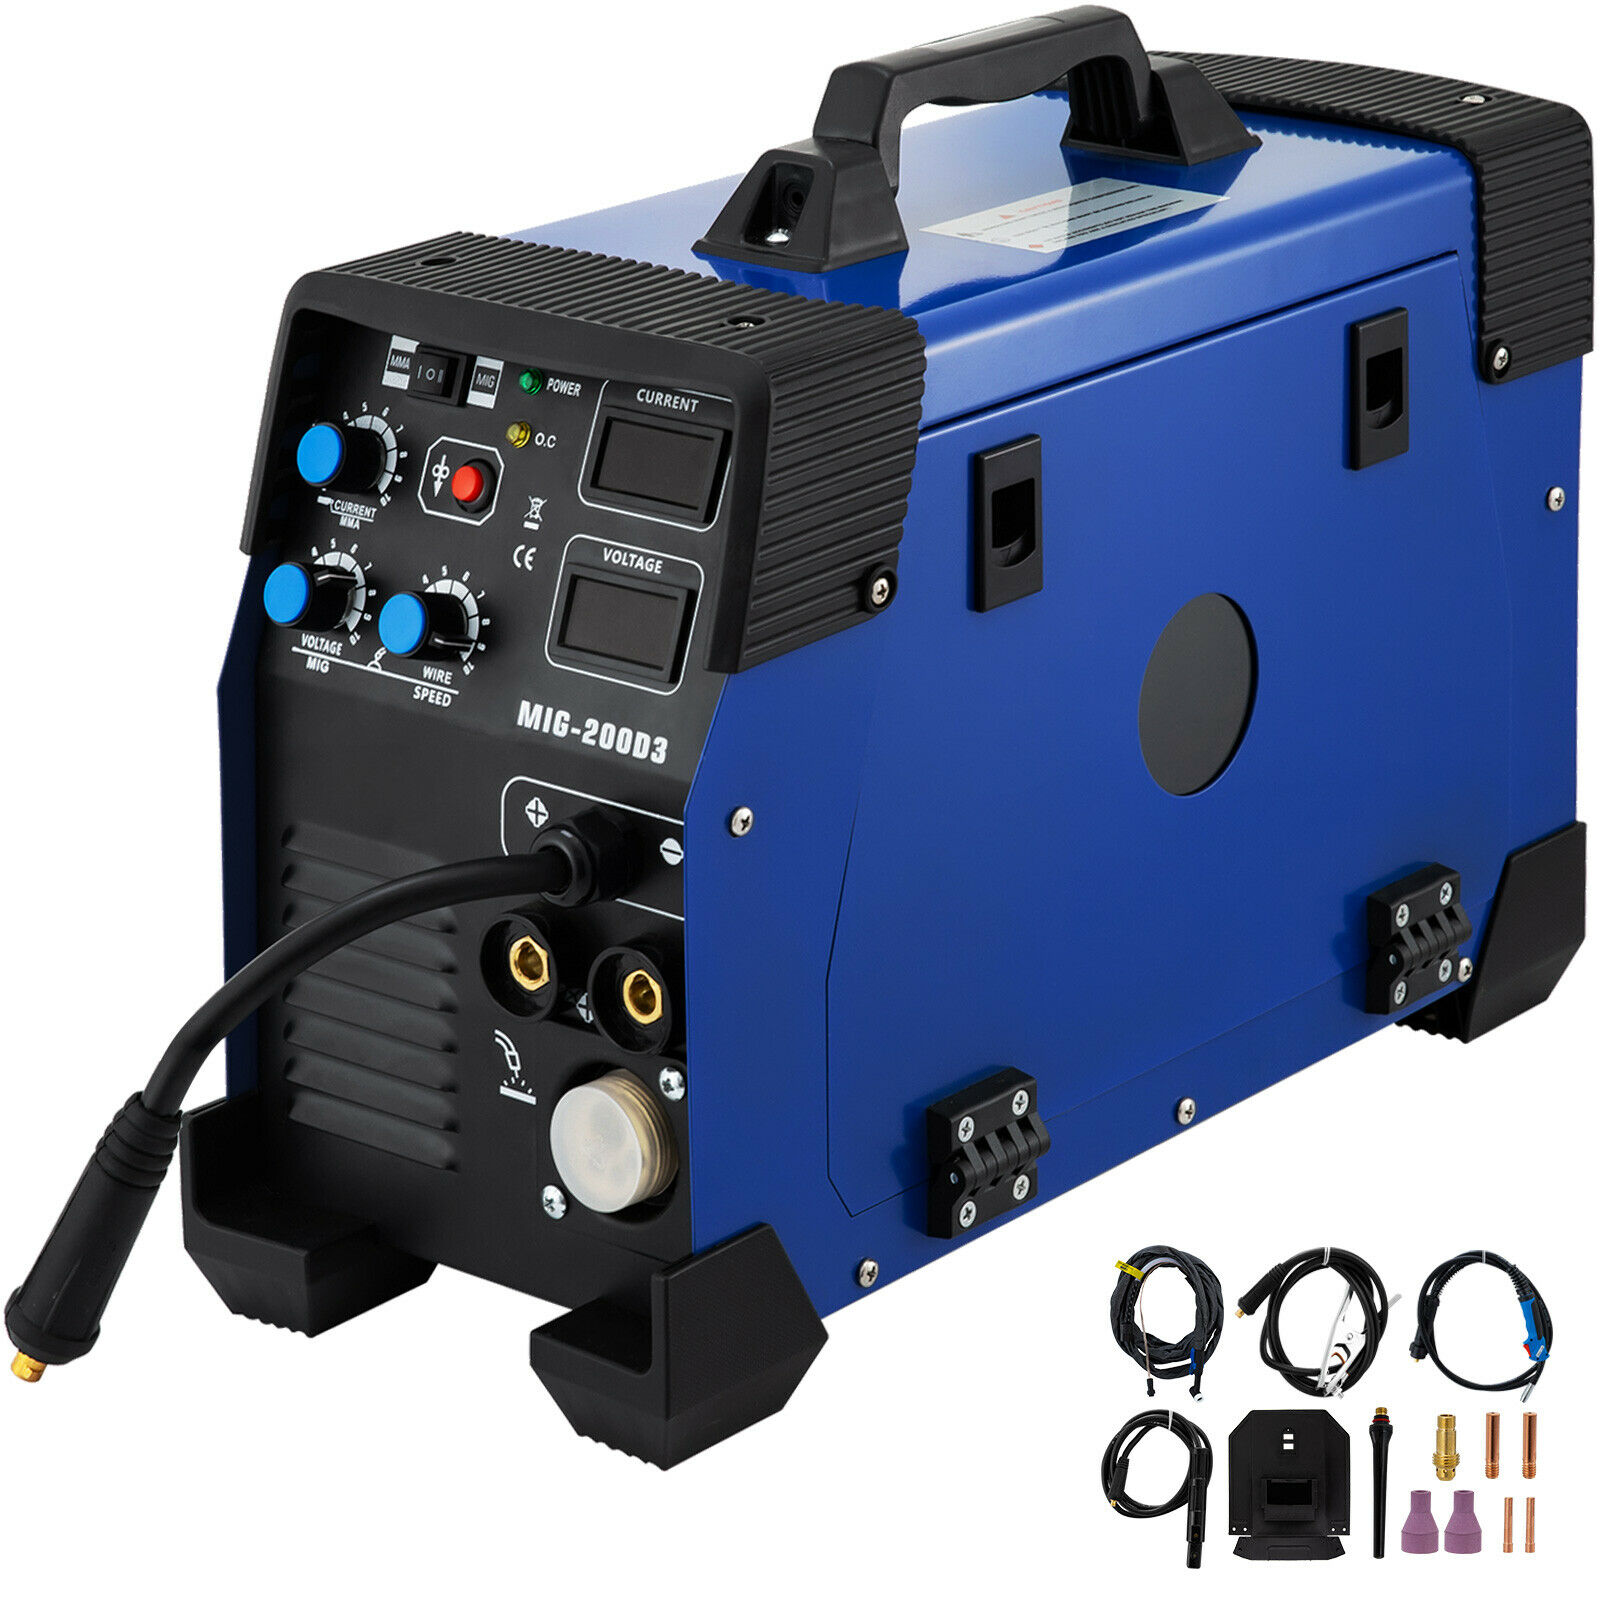 5 in 1 MIG/MAG/TIG/FLUX/MMA Inverter Welder 200Amp Combo Welding Machine Spot Welder